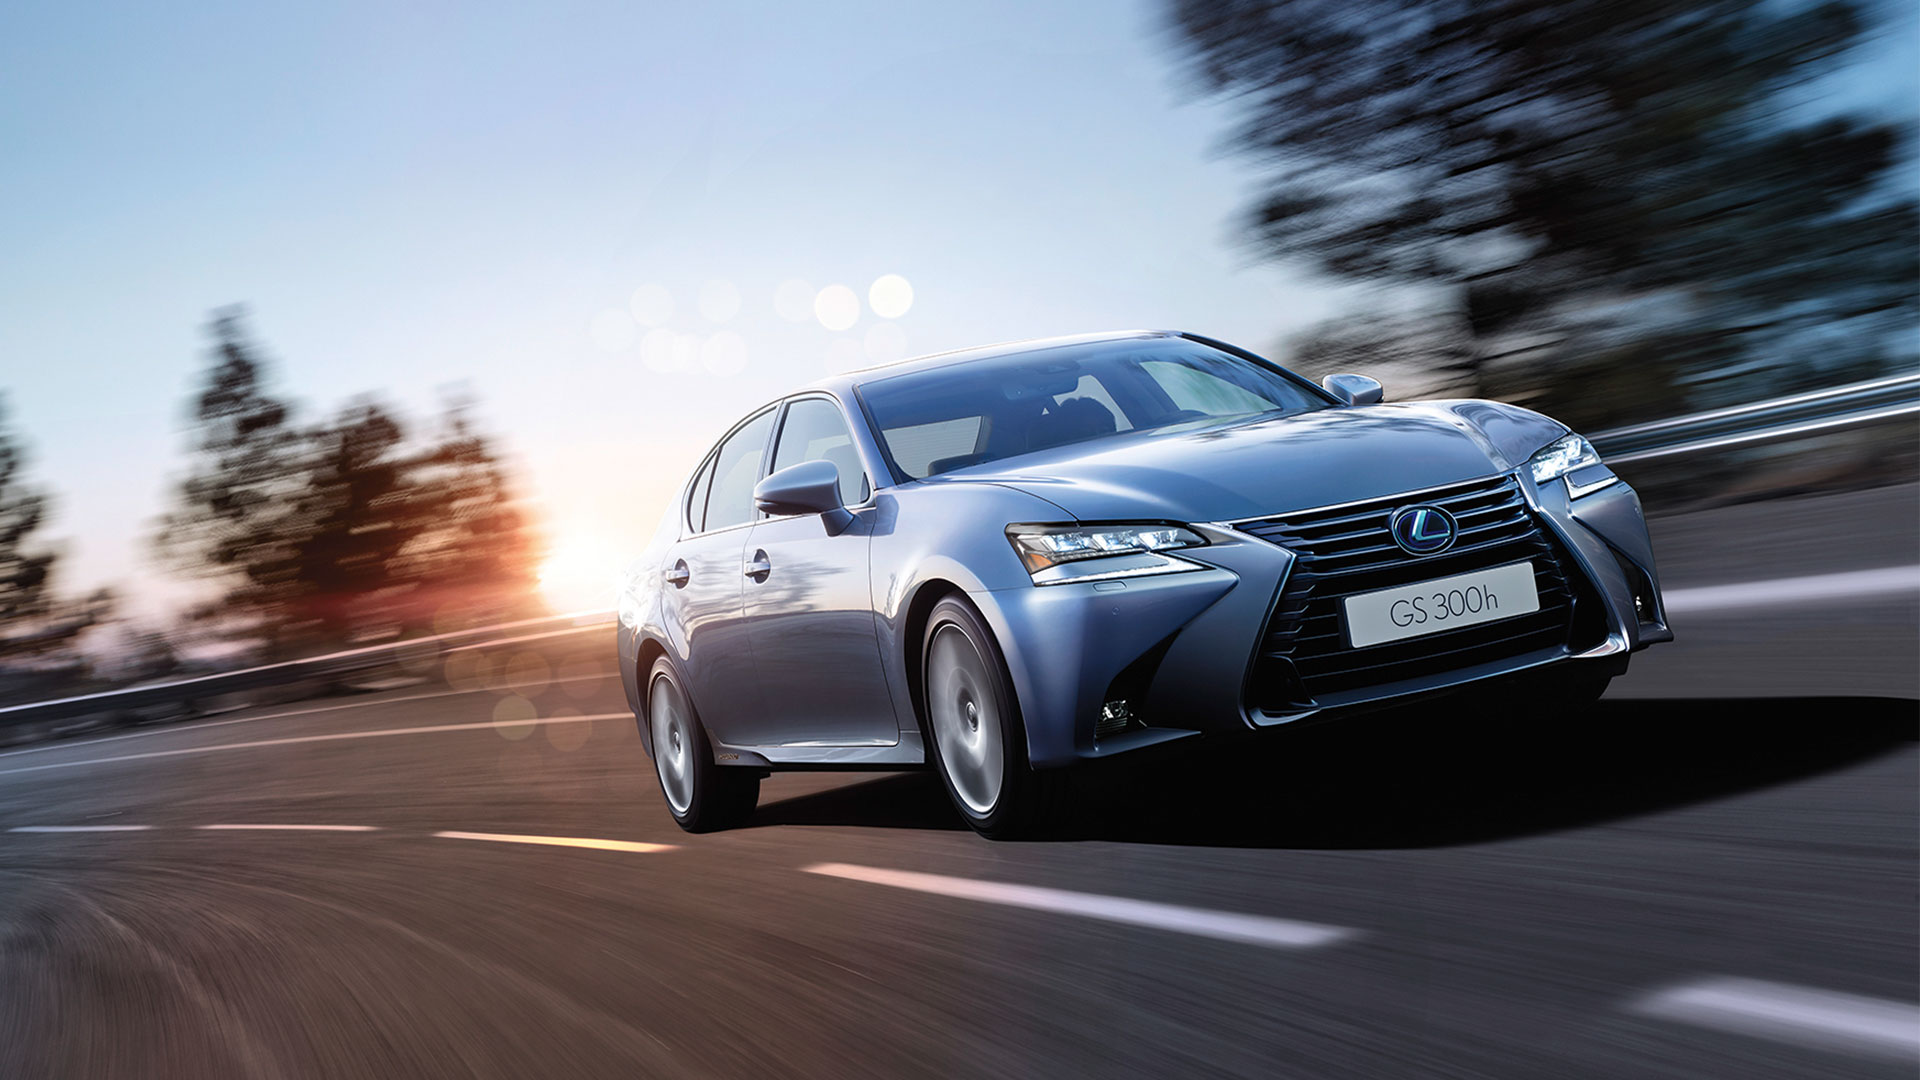 2017 lexus gs 300h next steps personalise